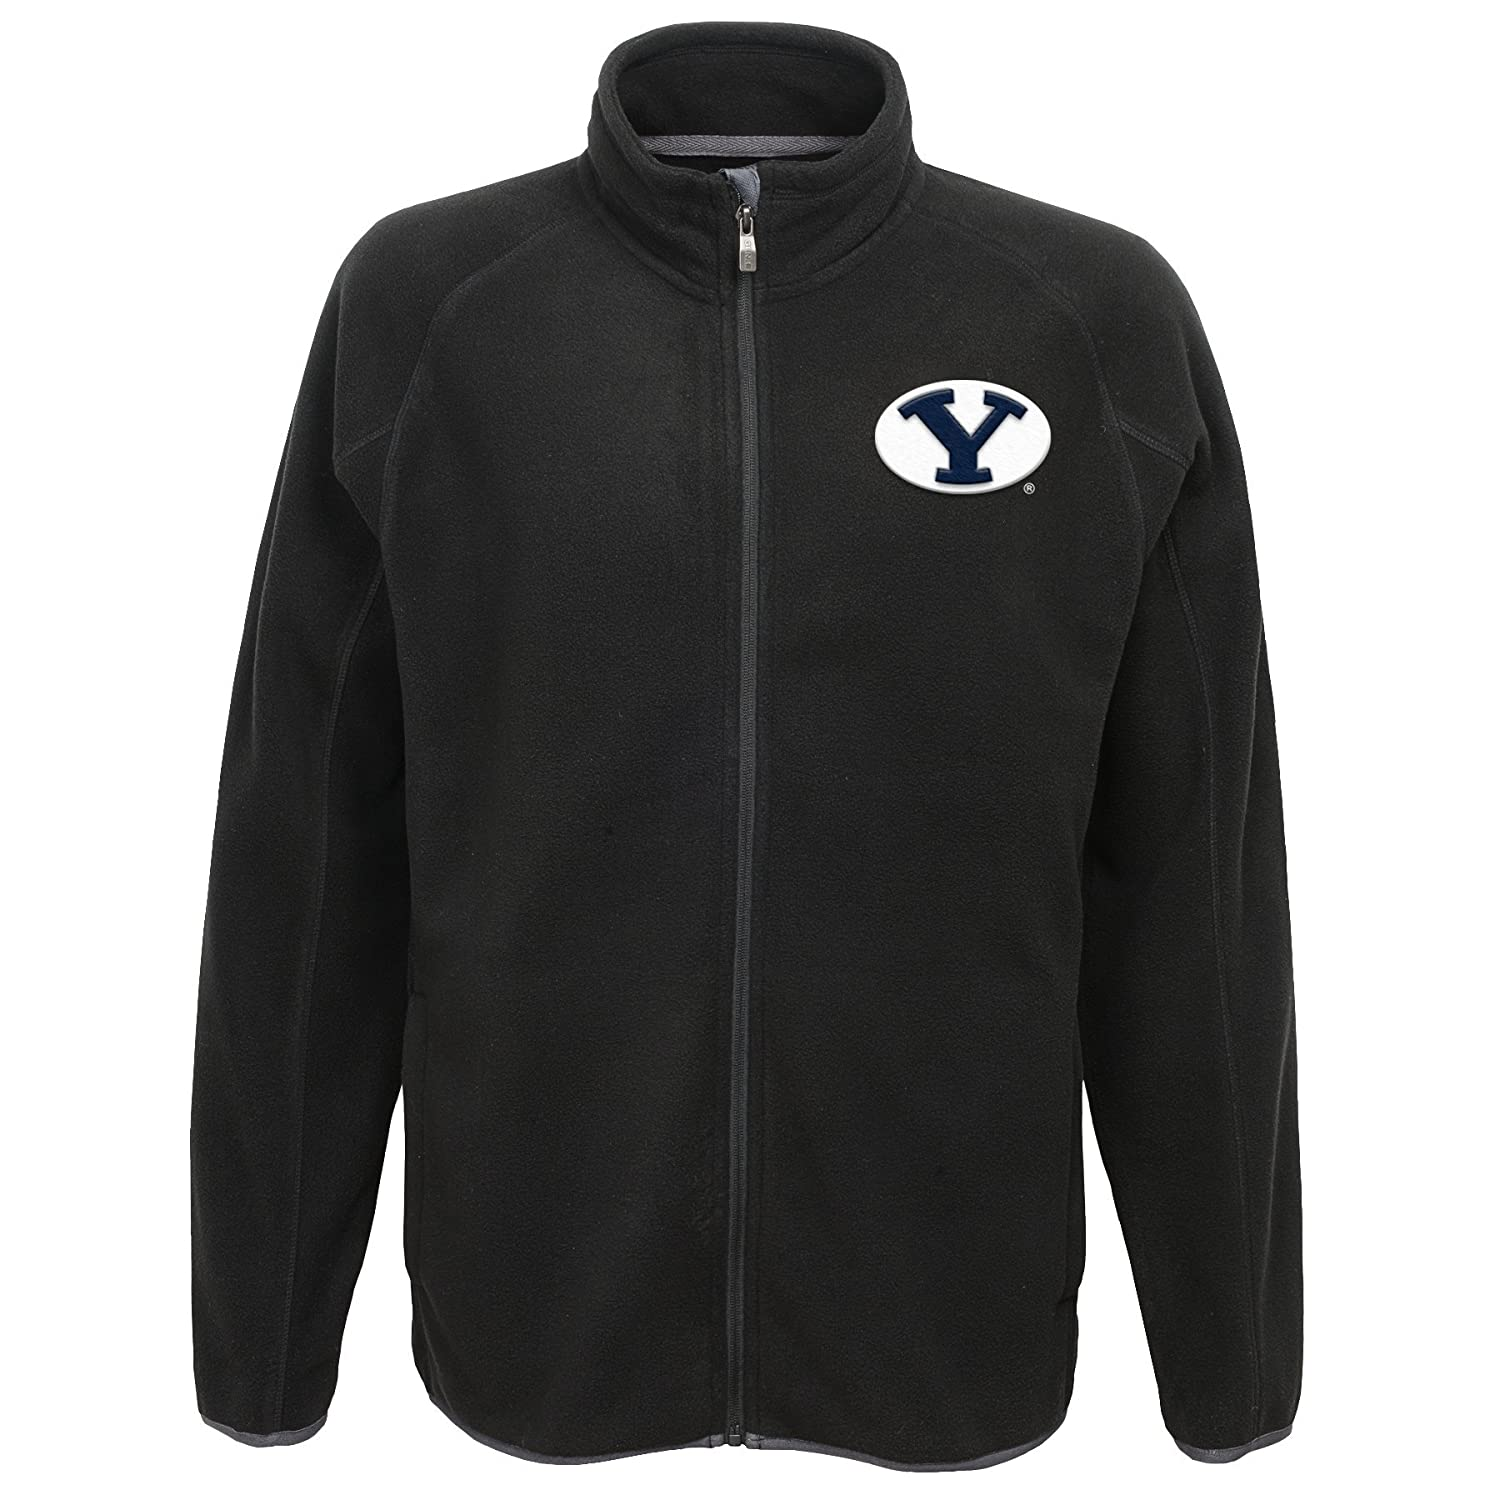 Black NCAA Byu Cougars Mens  Outerstuff Scrimmage Full Zip Jacket X-Large